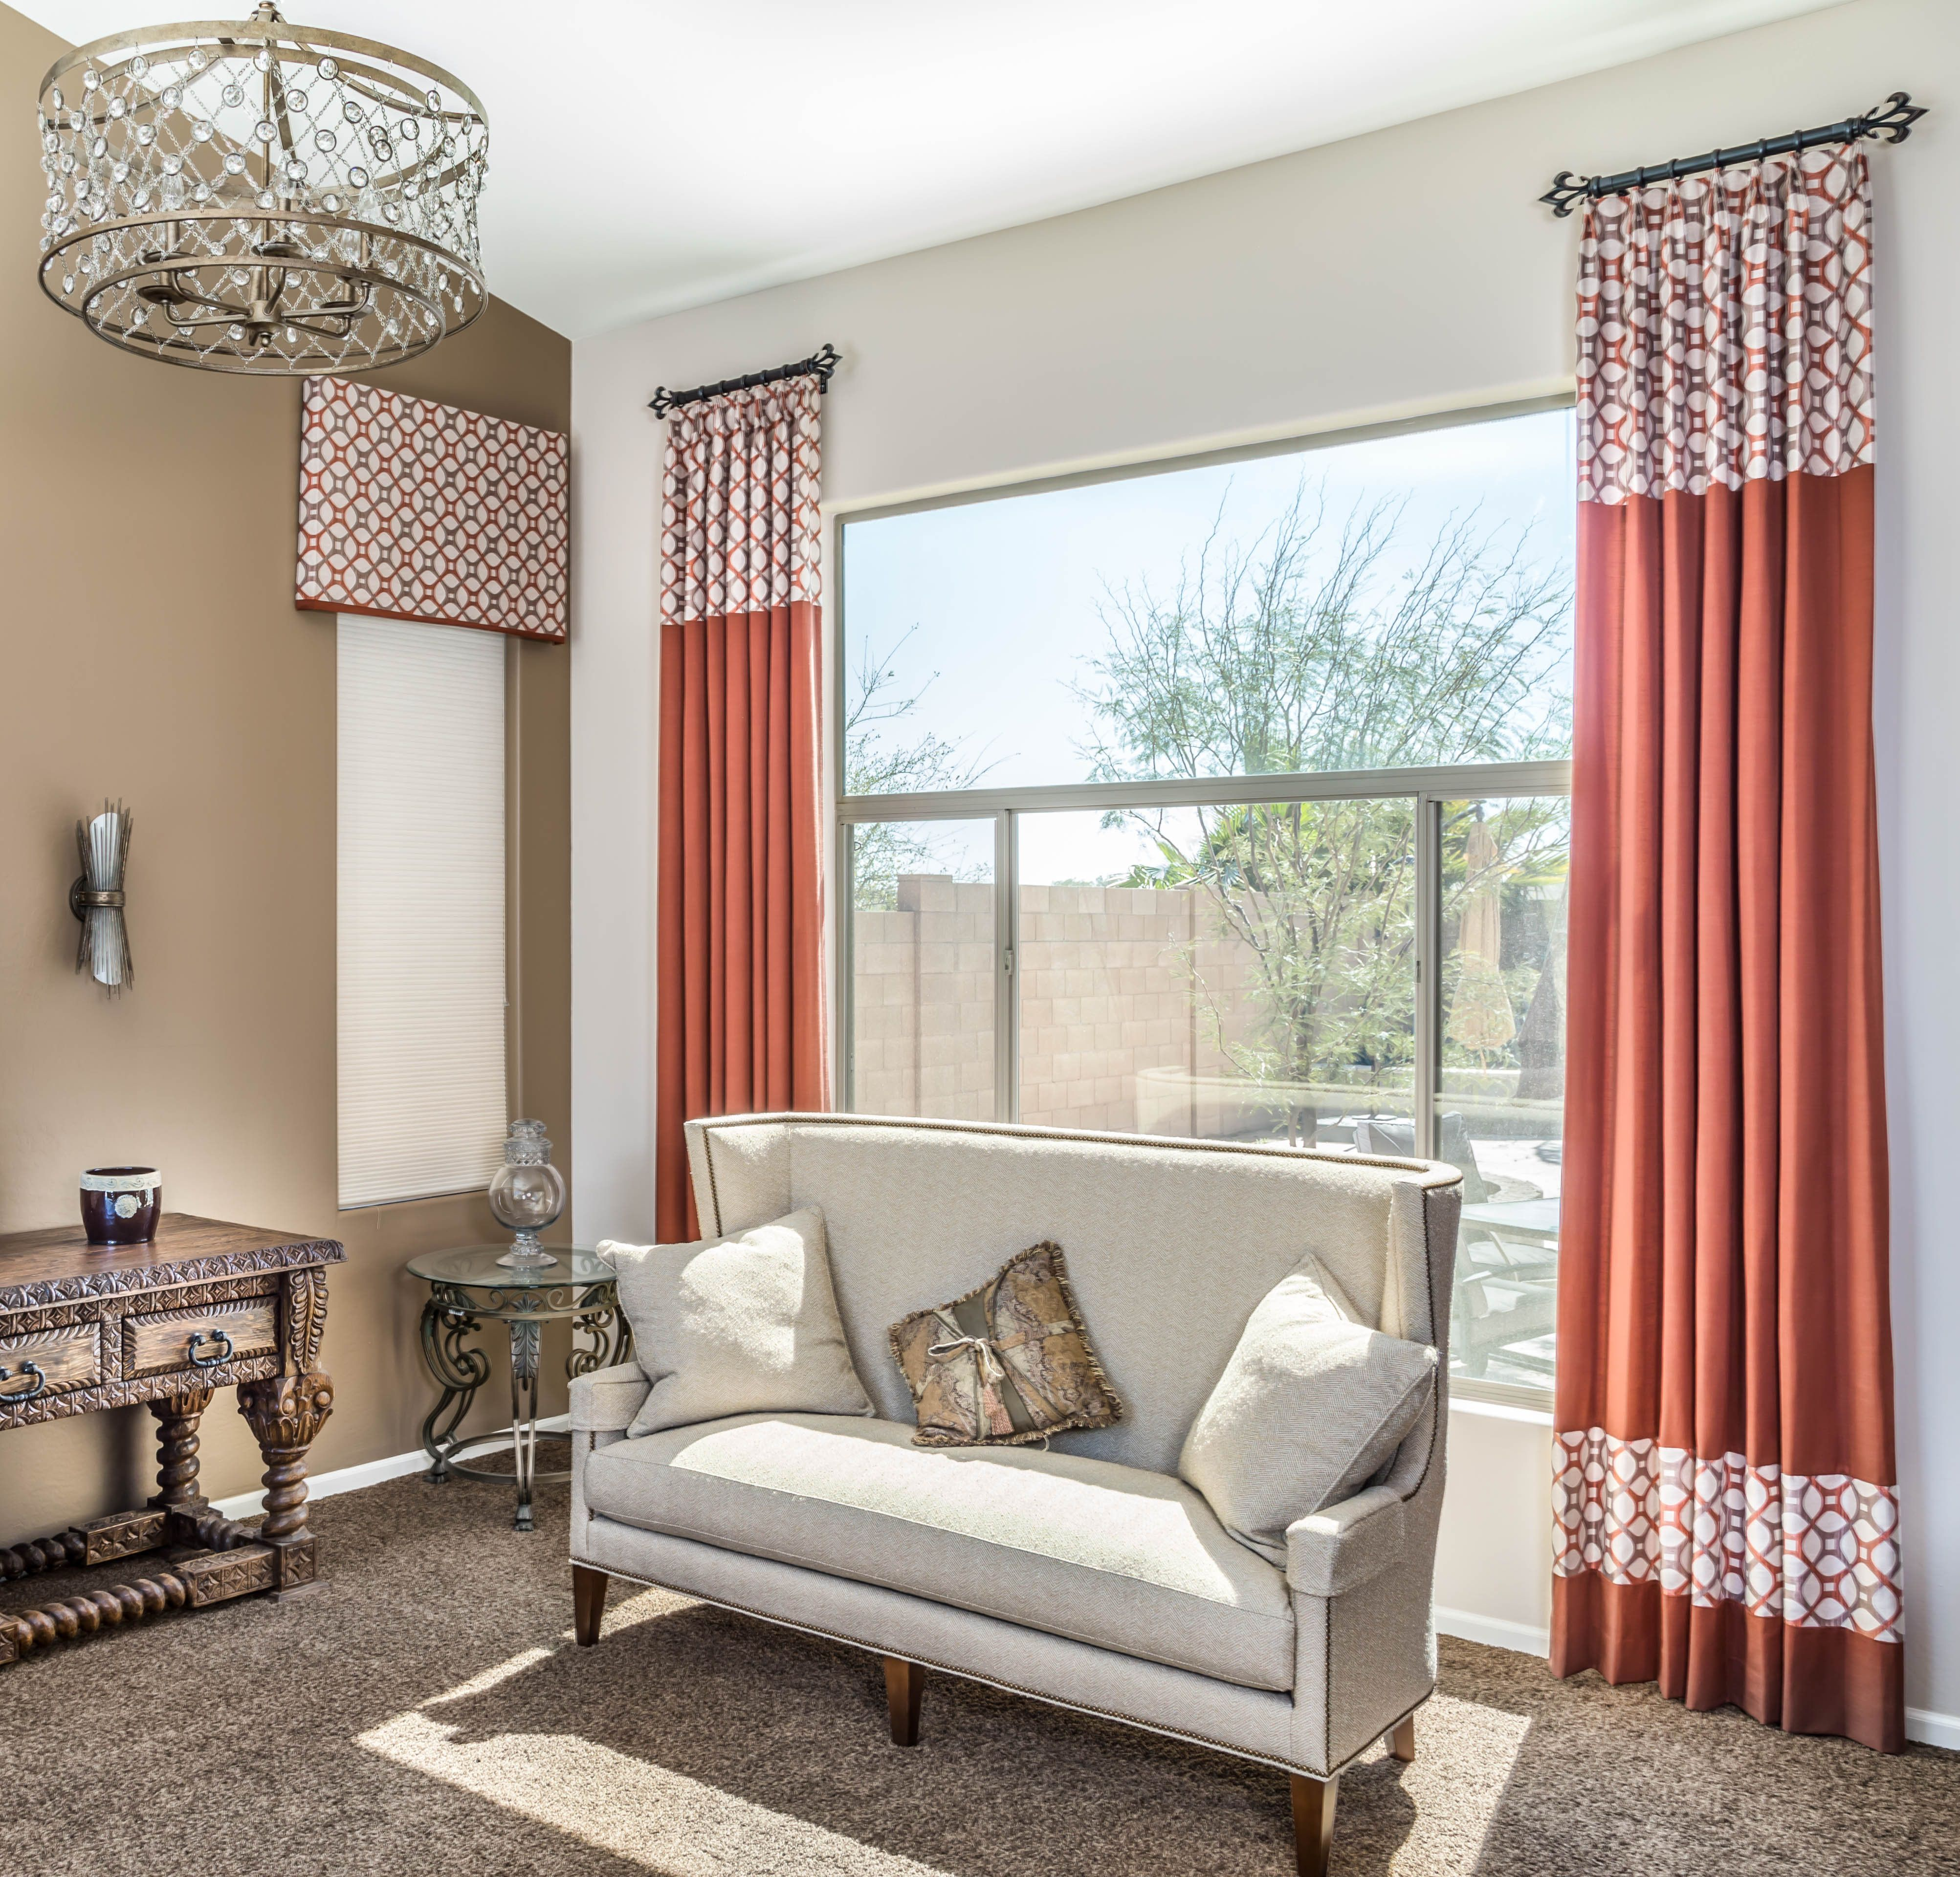 Window coverings arched windows  images of drapery  az draperies and pillows phoenix ahwatukee